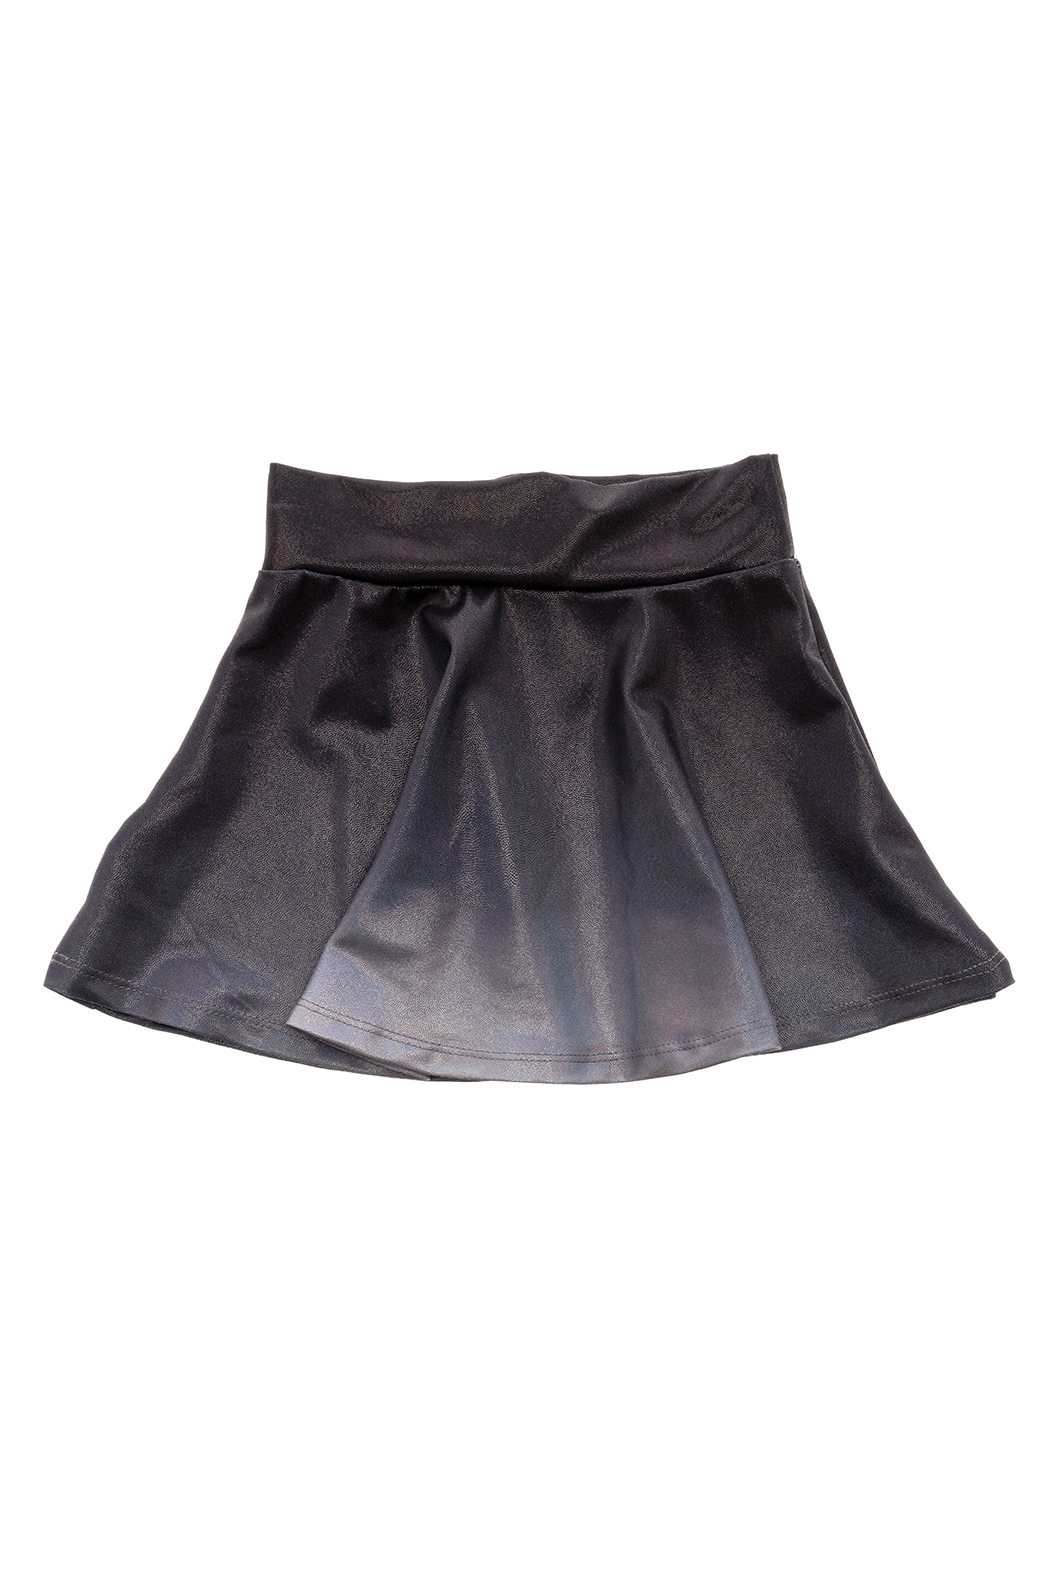 Rock Candy Ombre Skirt - Back Cropped Image